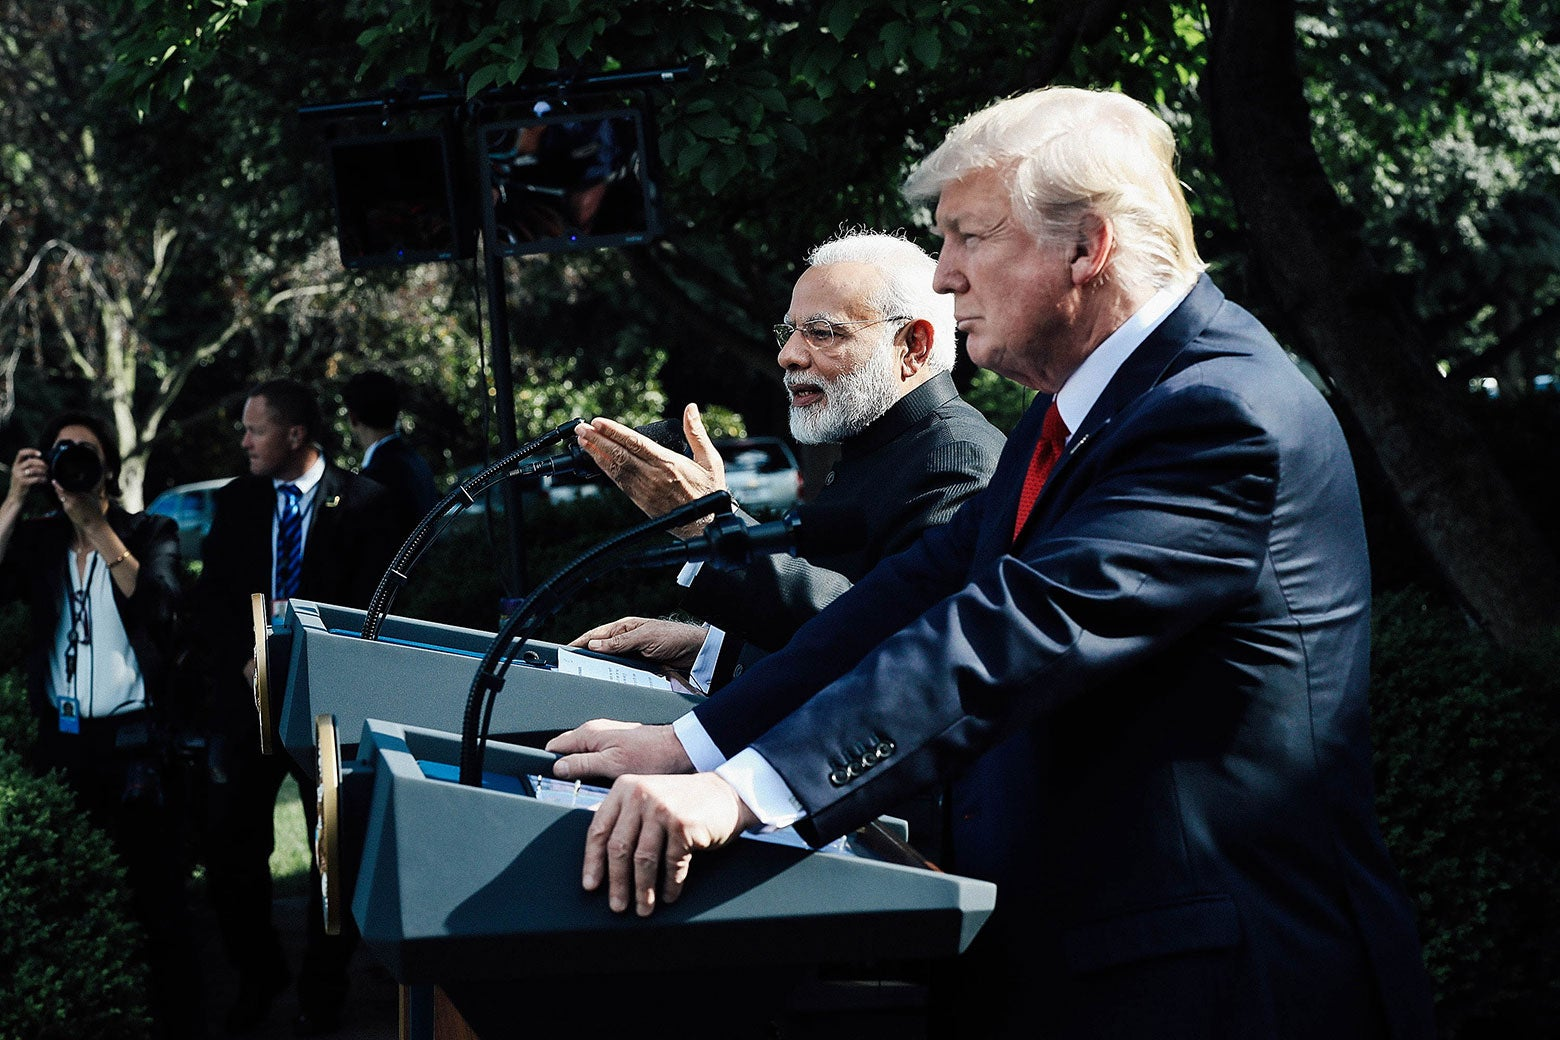 Indian Prime Minister Narendra Modi and U.S. President Donald Trump deliver joint statements at the White House on June 26, 2017.